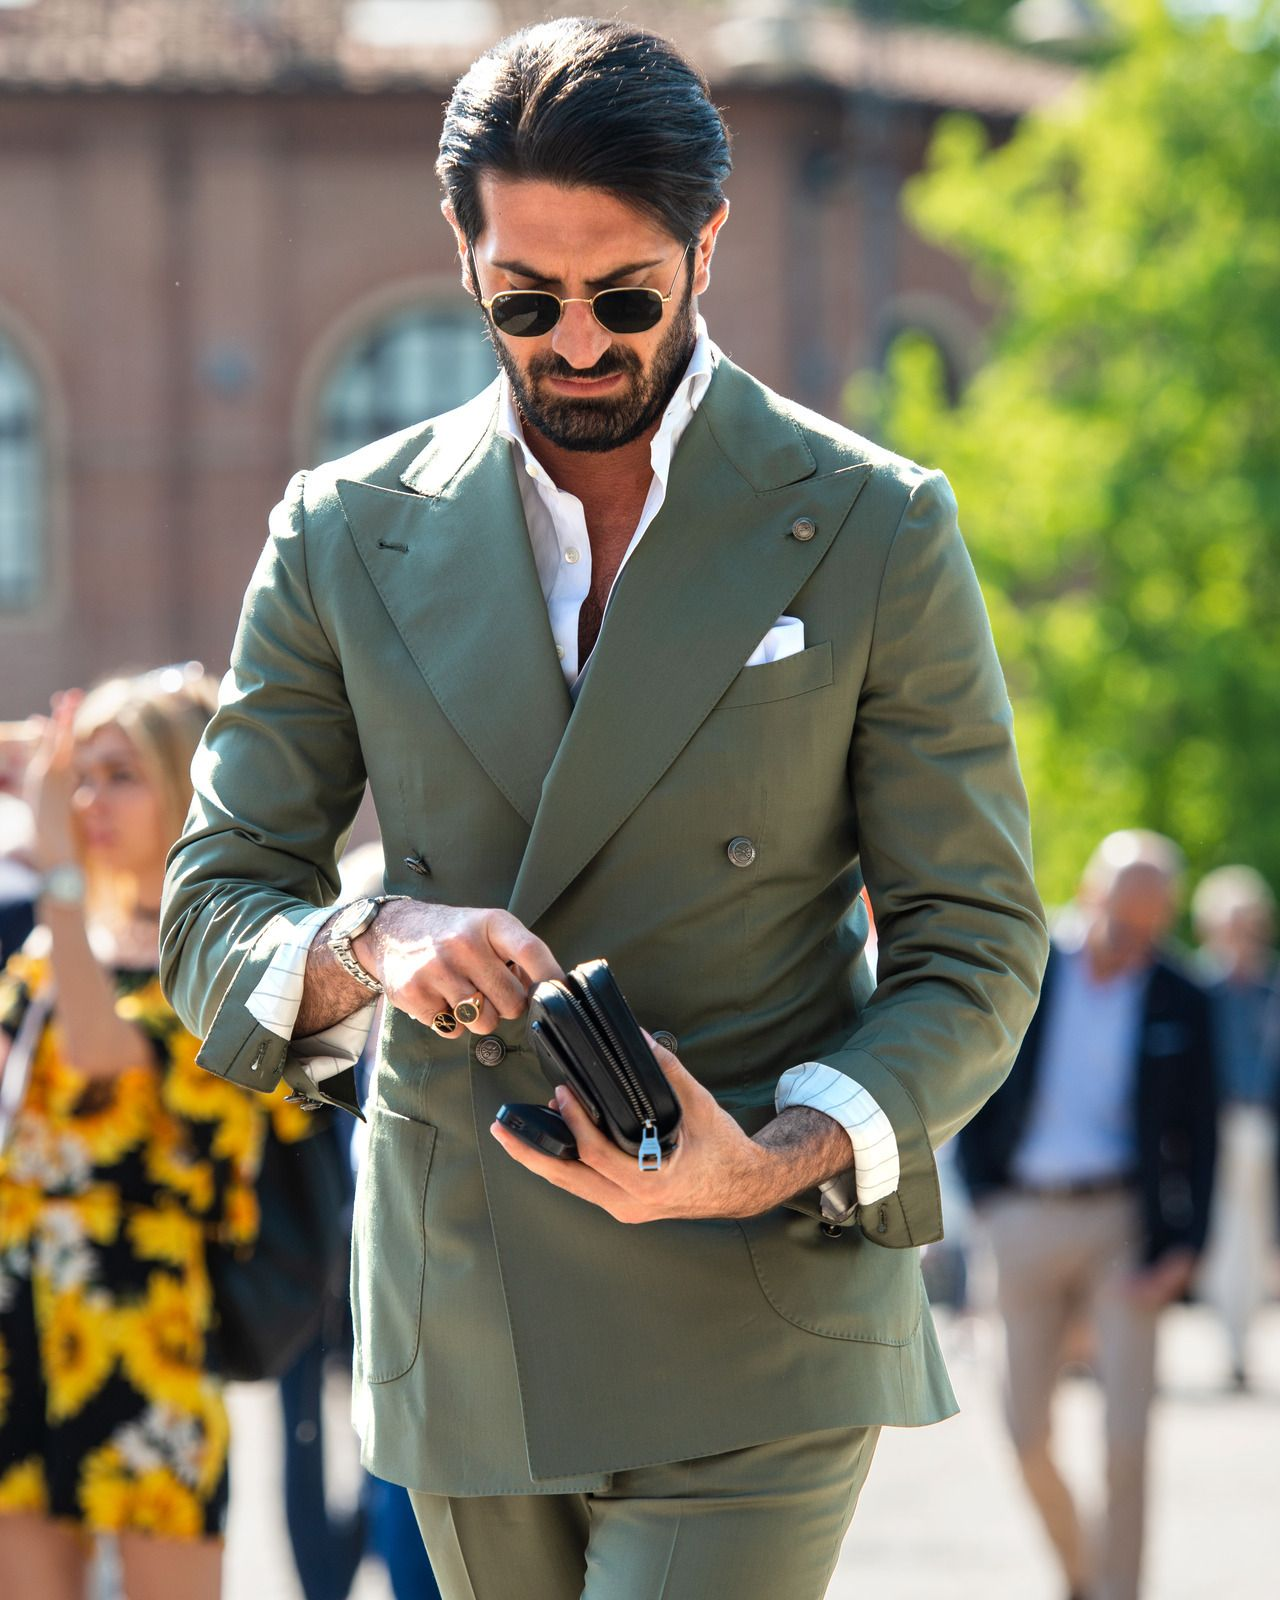 Pin by Mr. J on outfits in 2019 | Italian mens fashion ...